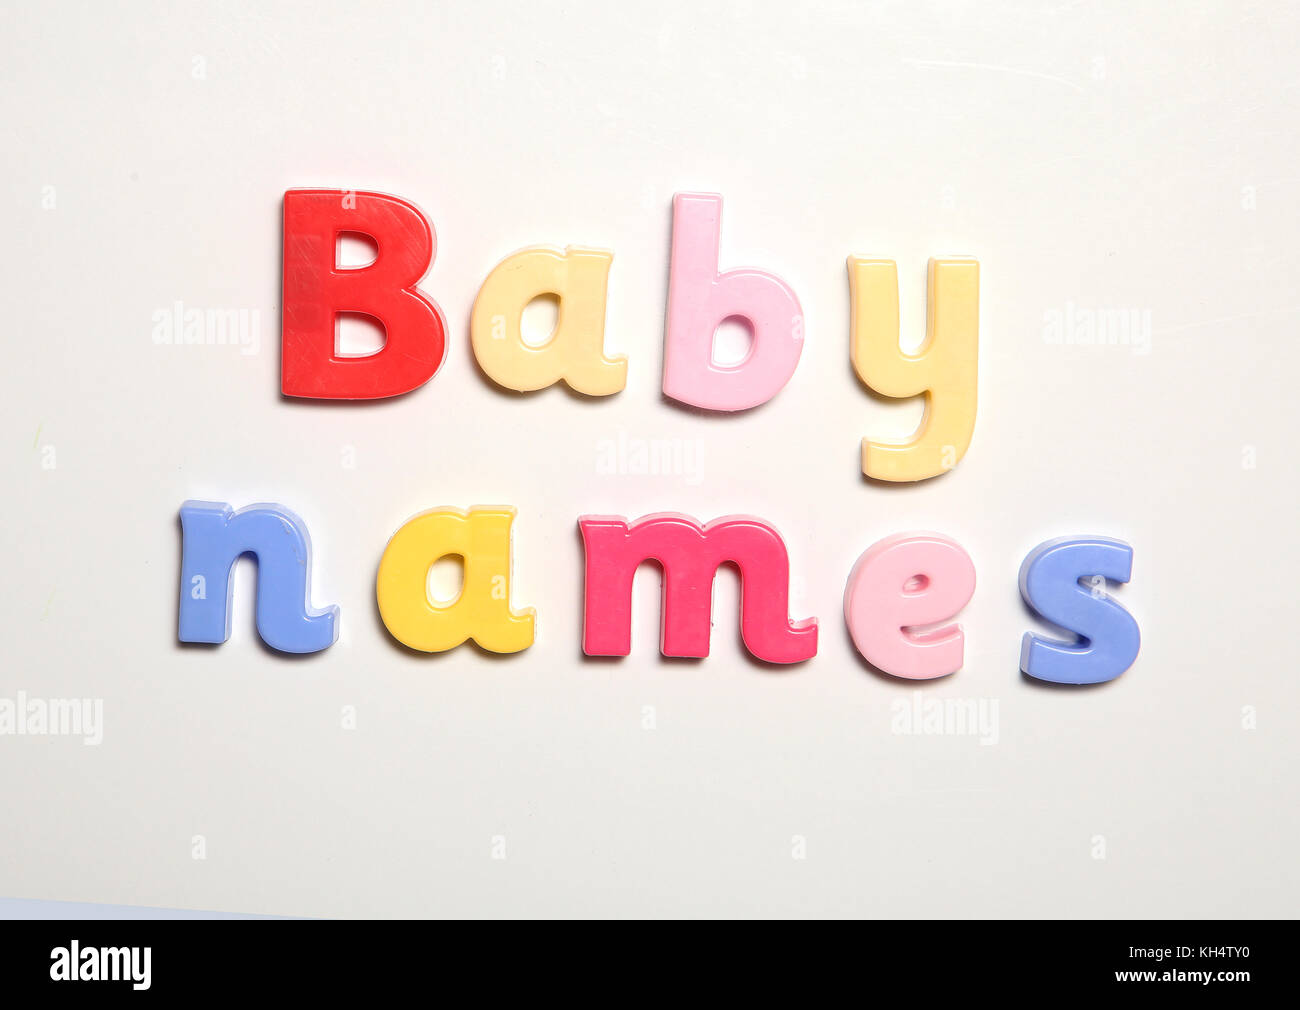 baby names spelt in magnet letters - Stock Image